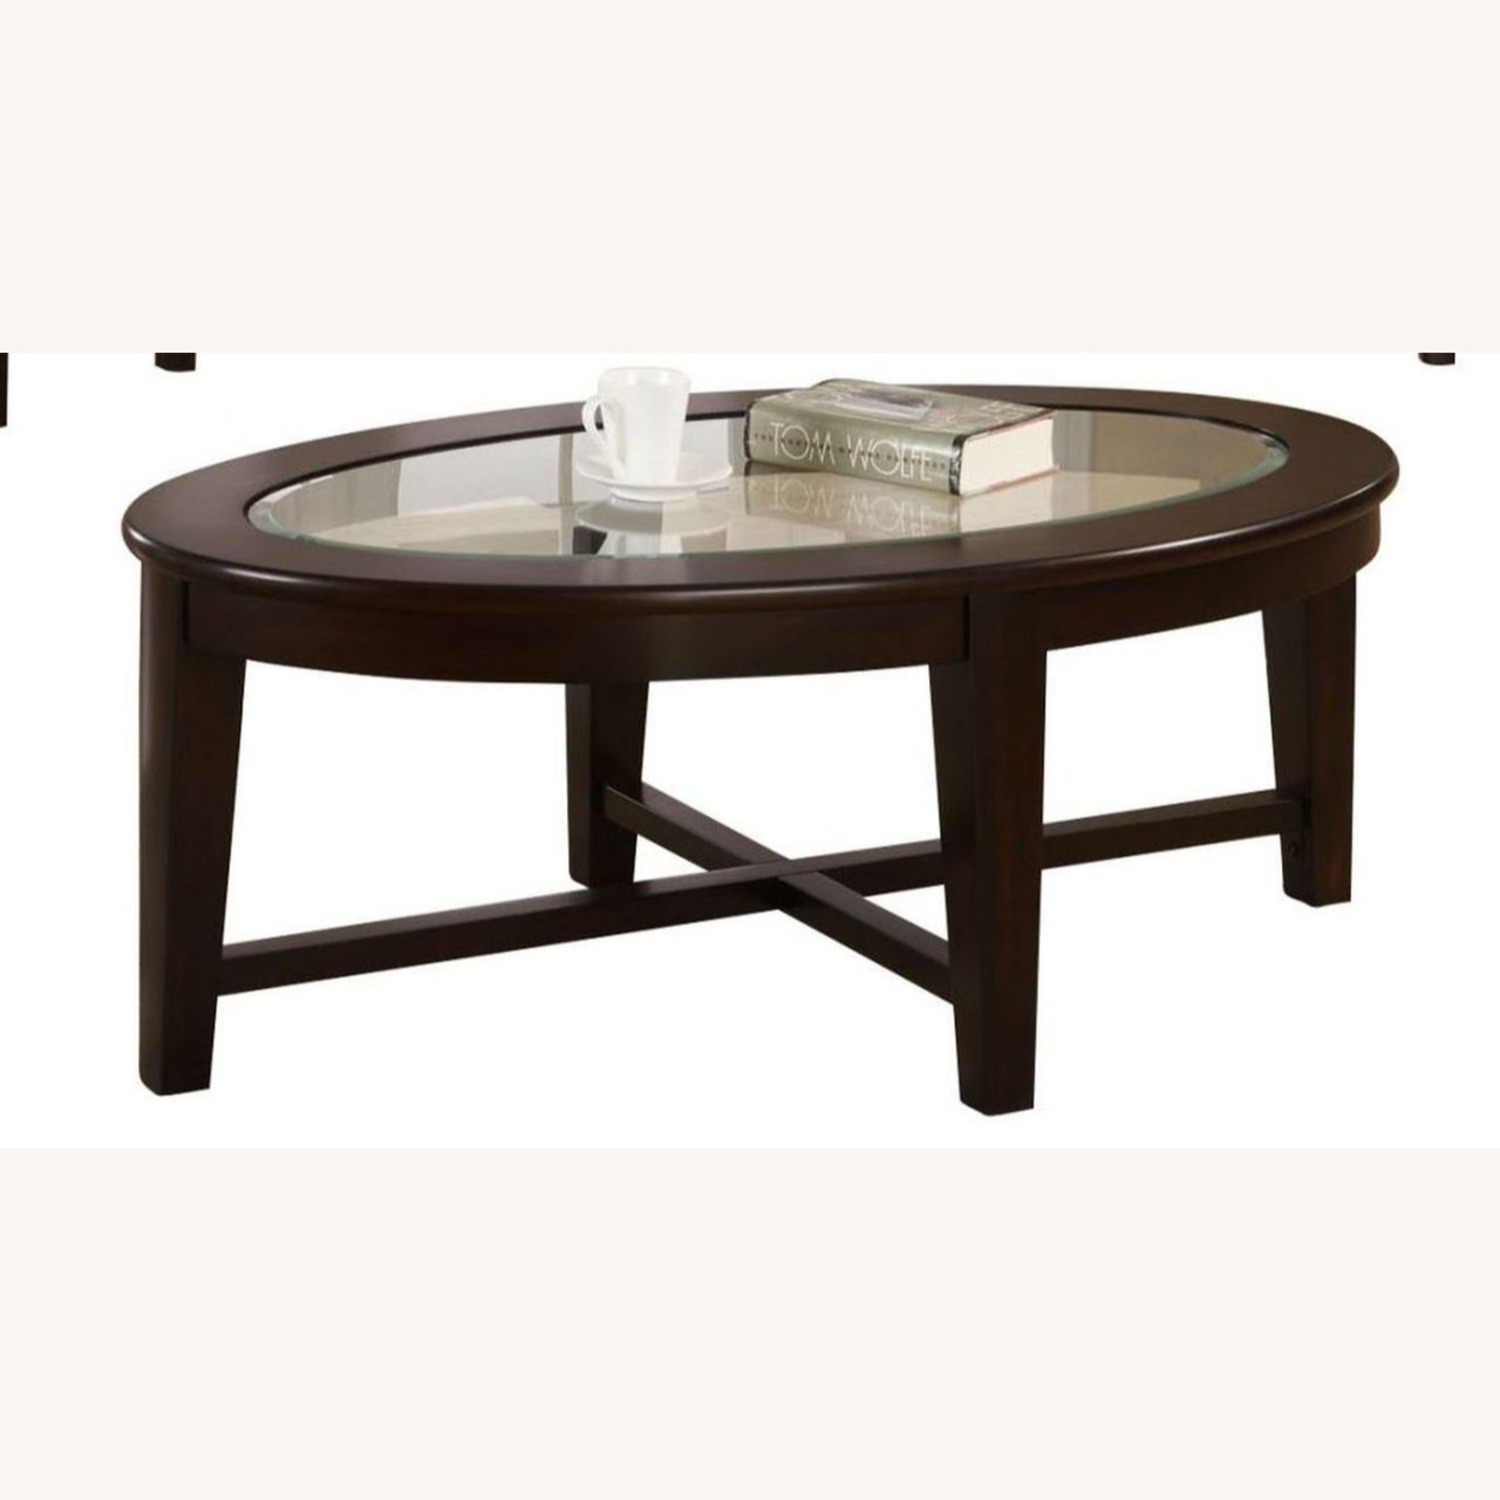 3-Piece Occasional Set In Cappuccino Finish - image-1